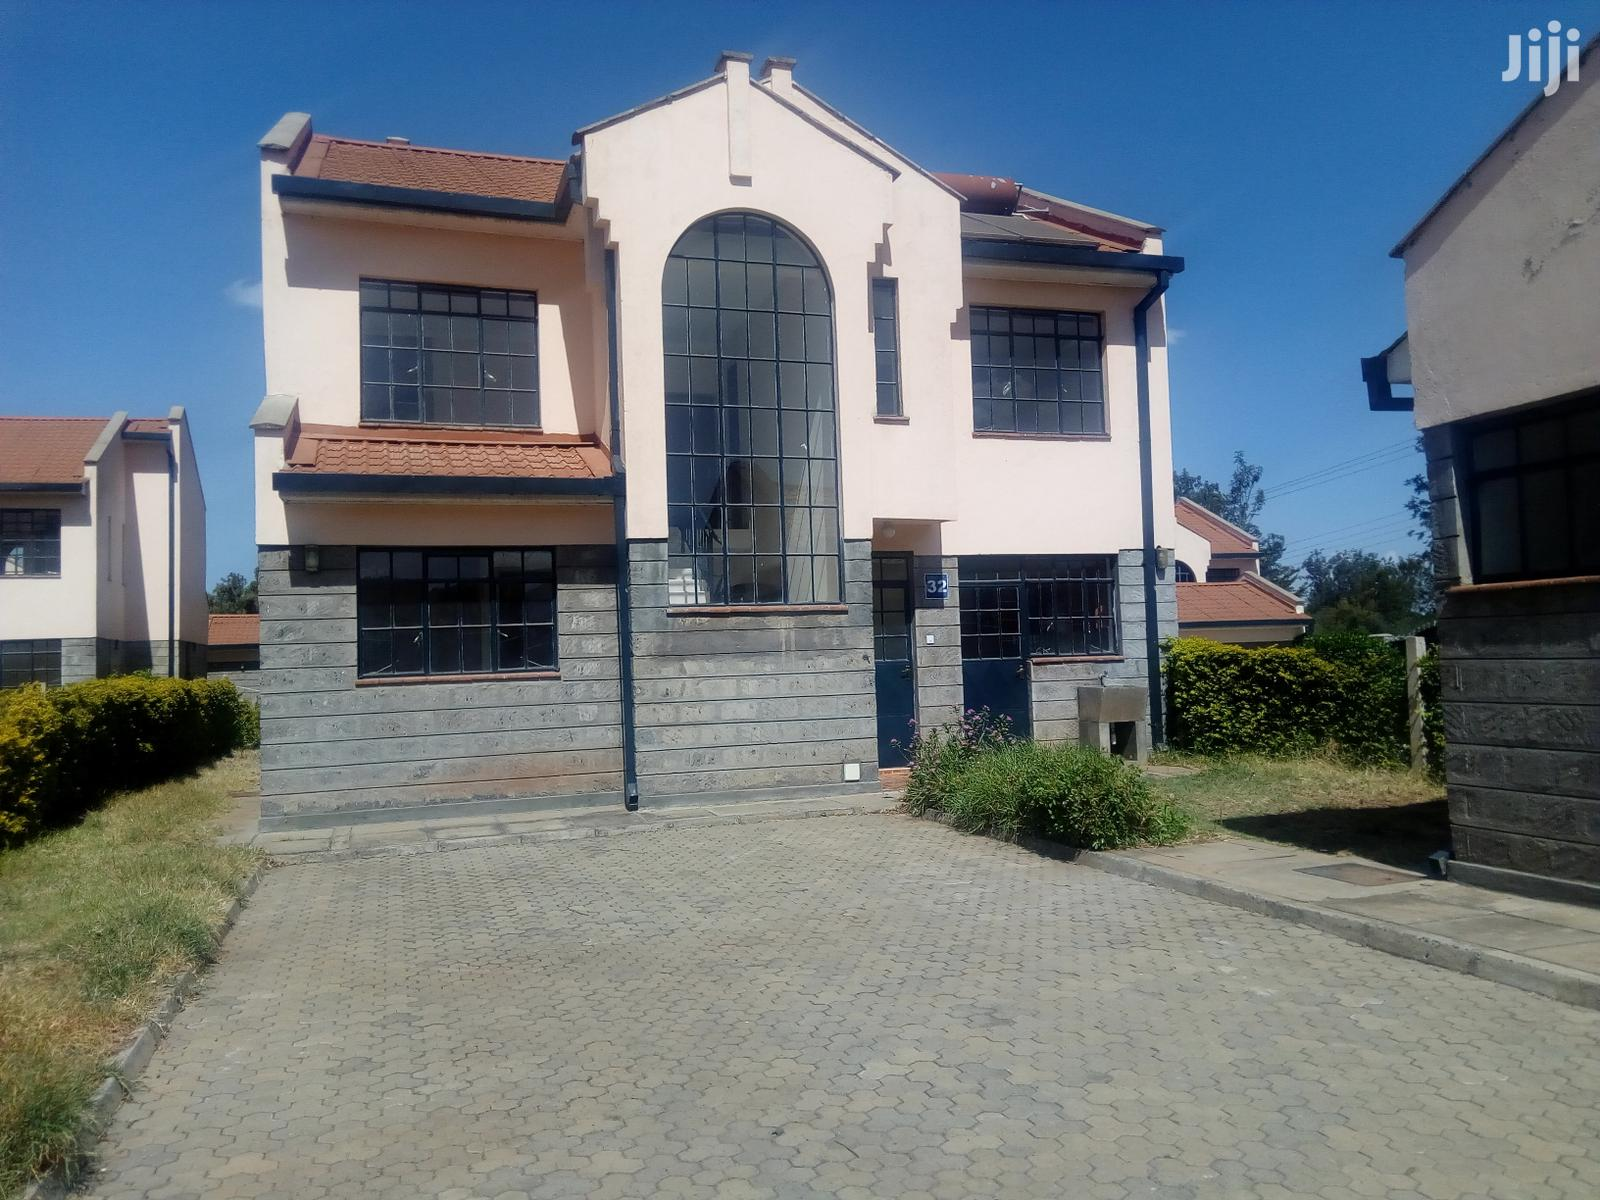 Townhouse To Let In Ngong Matasia